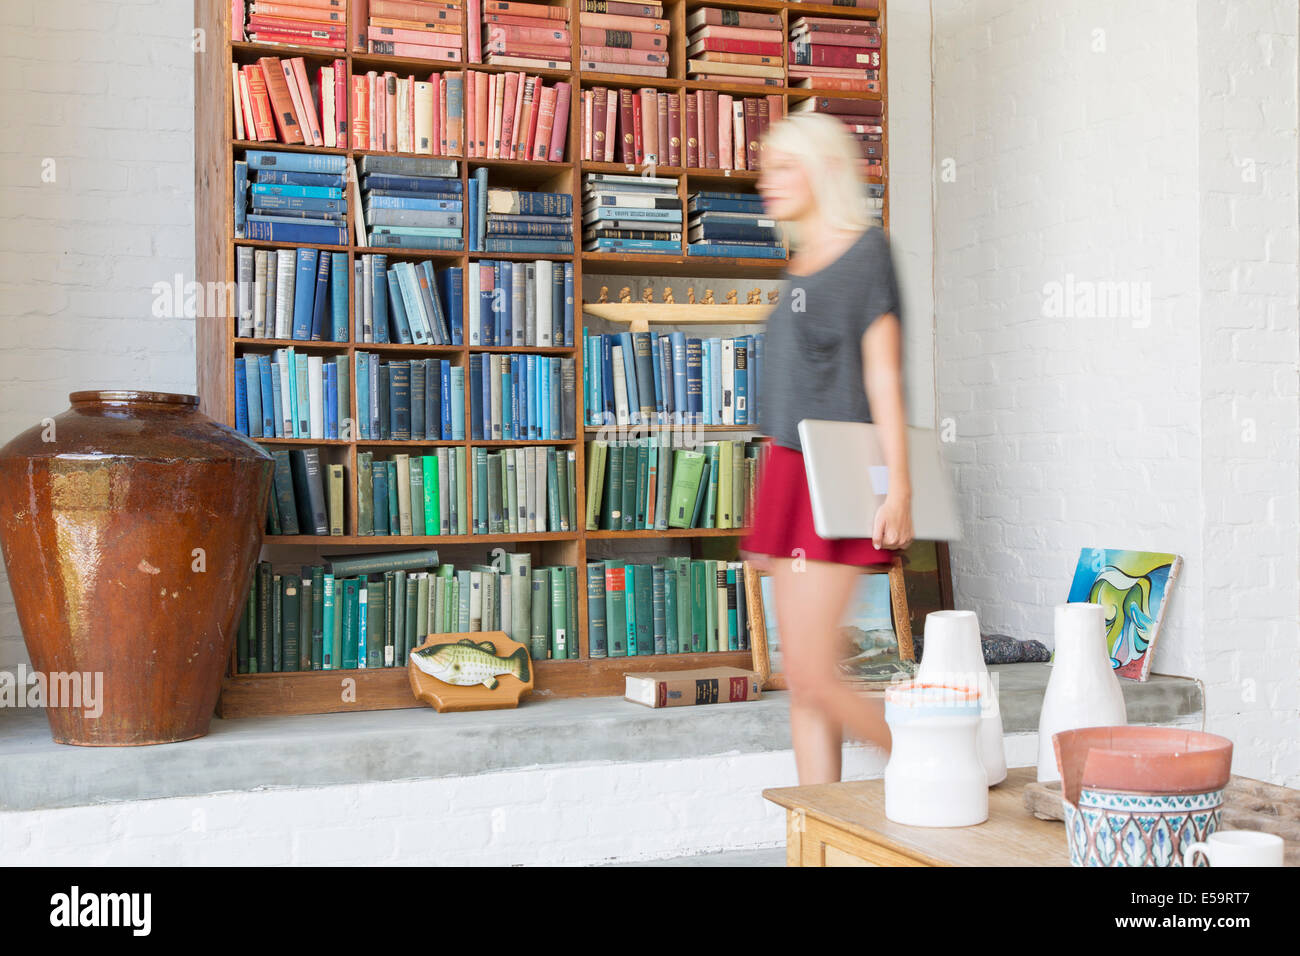 Blurred view of woman walking by book shelves - Stock Image